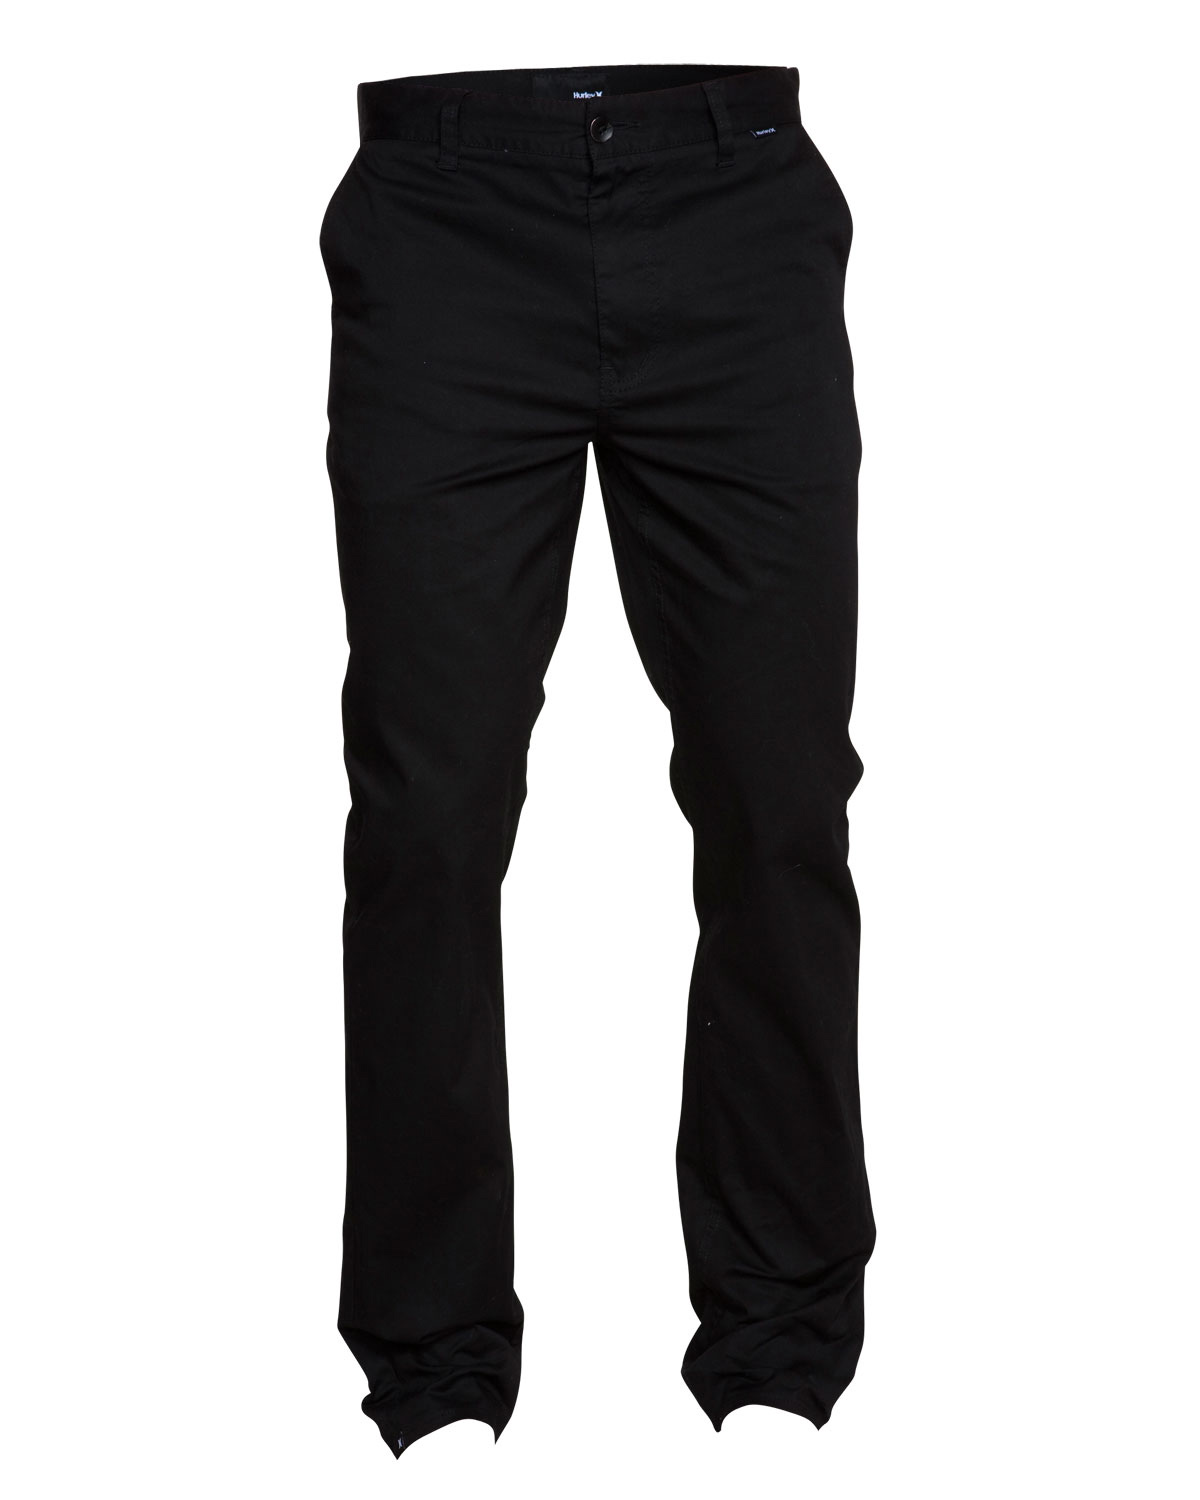 Surf Key Features of the Hurley Corman 2.0 Pants: Slim fit 97% cotton/3% spandex Military workwear inspired pant with compacted twill and 3% stretch - $38.95